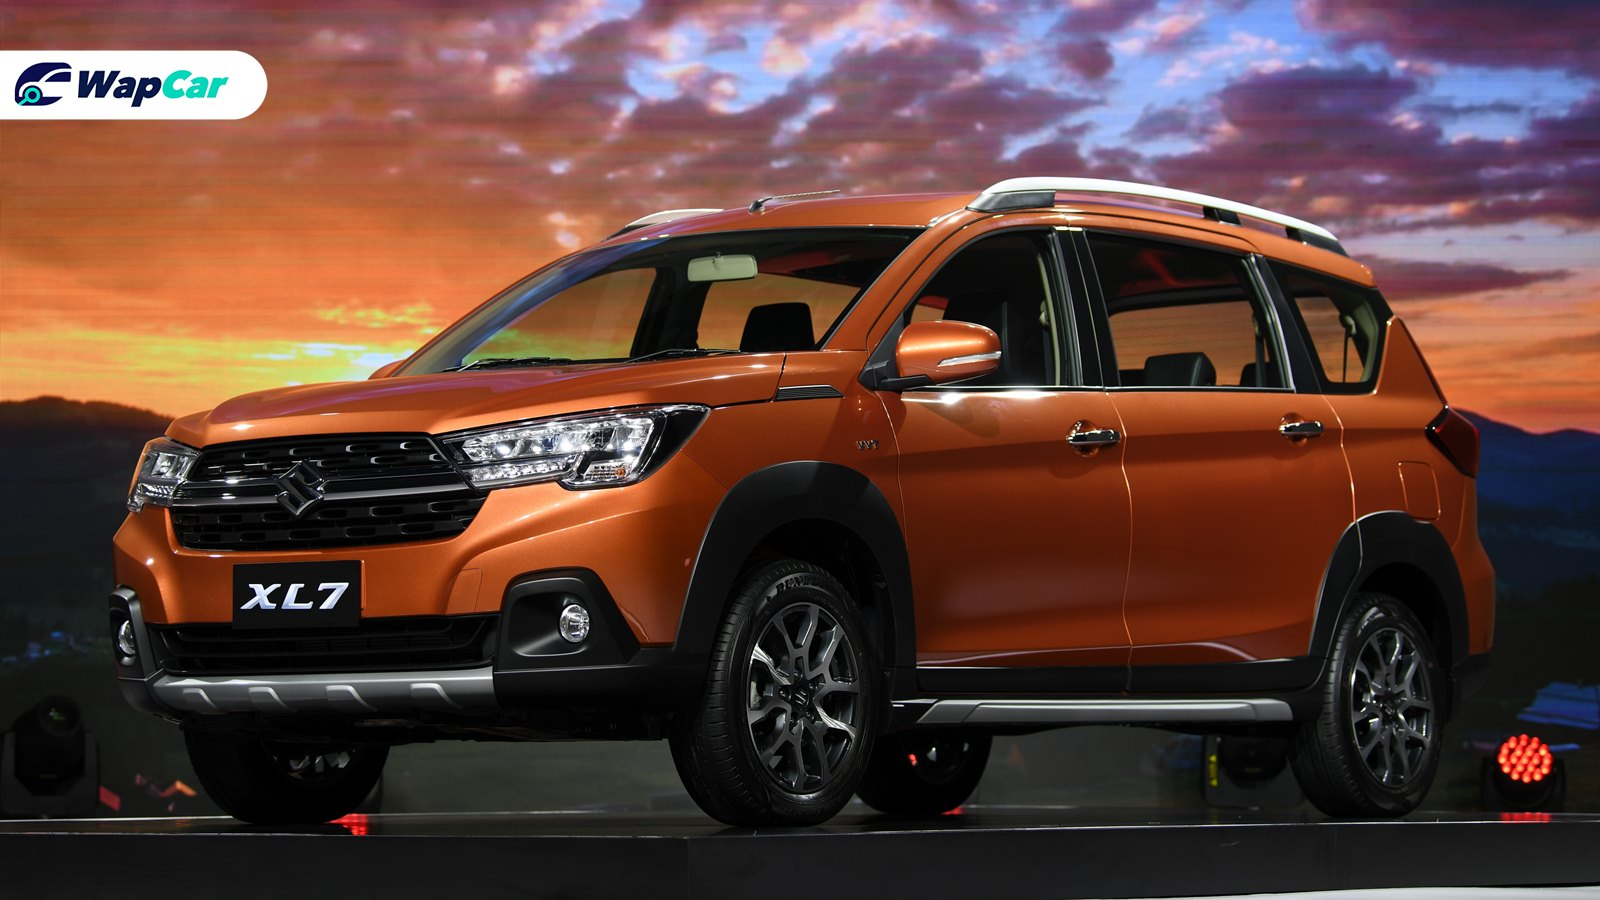 thailand welcomes the 2020 suzuki xl7 could we be next wapcar thailand welcomes the 2020 suzuki xl7